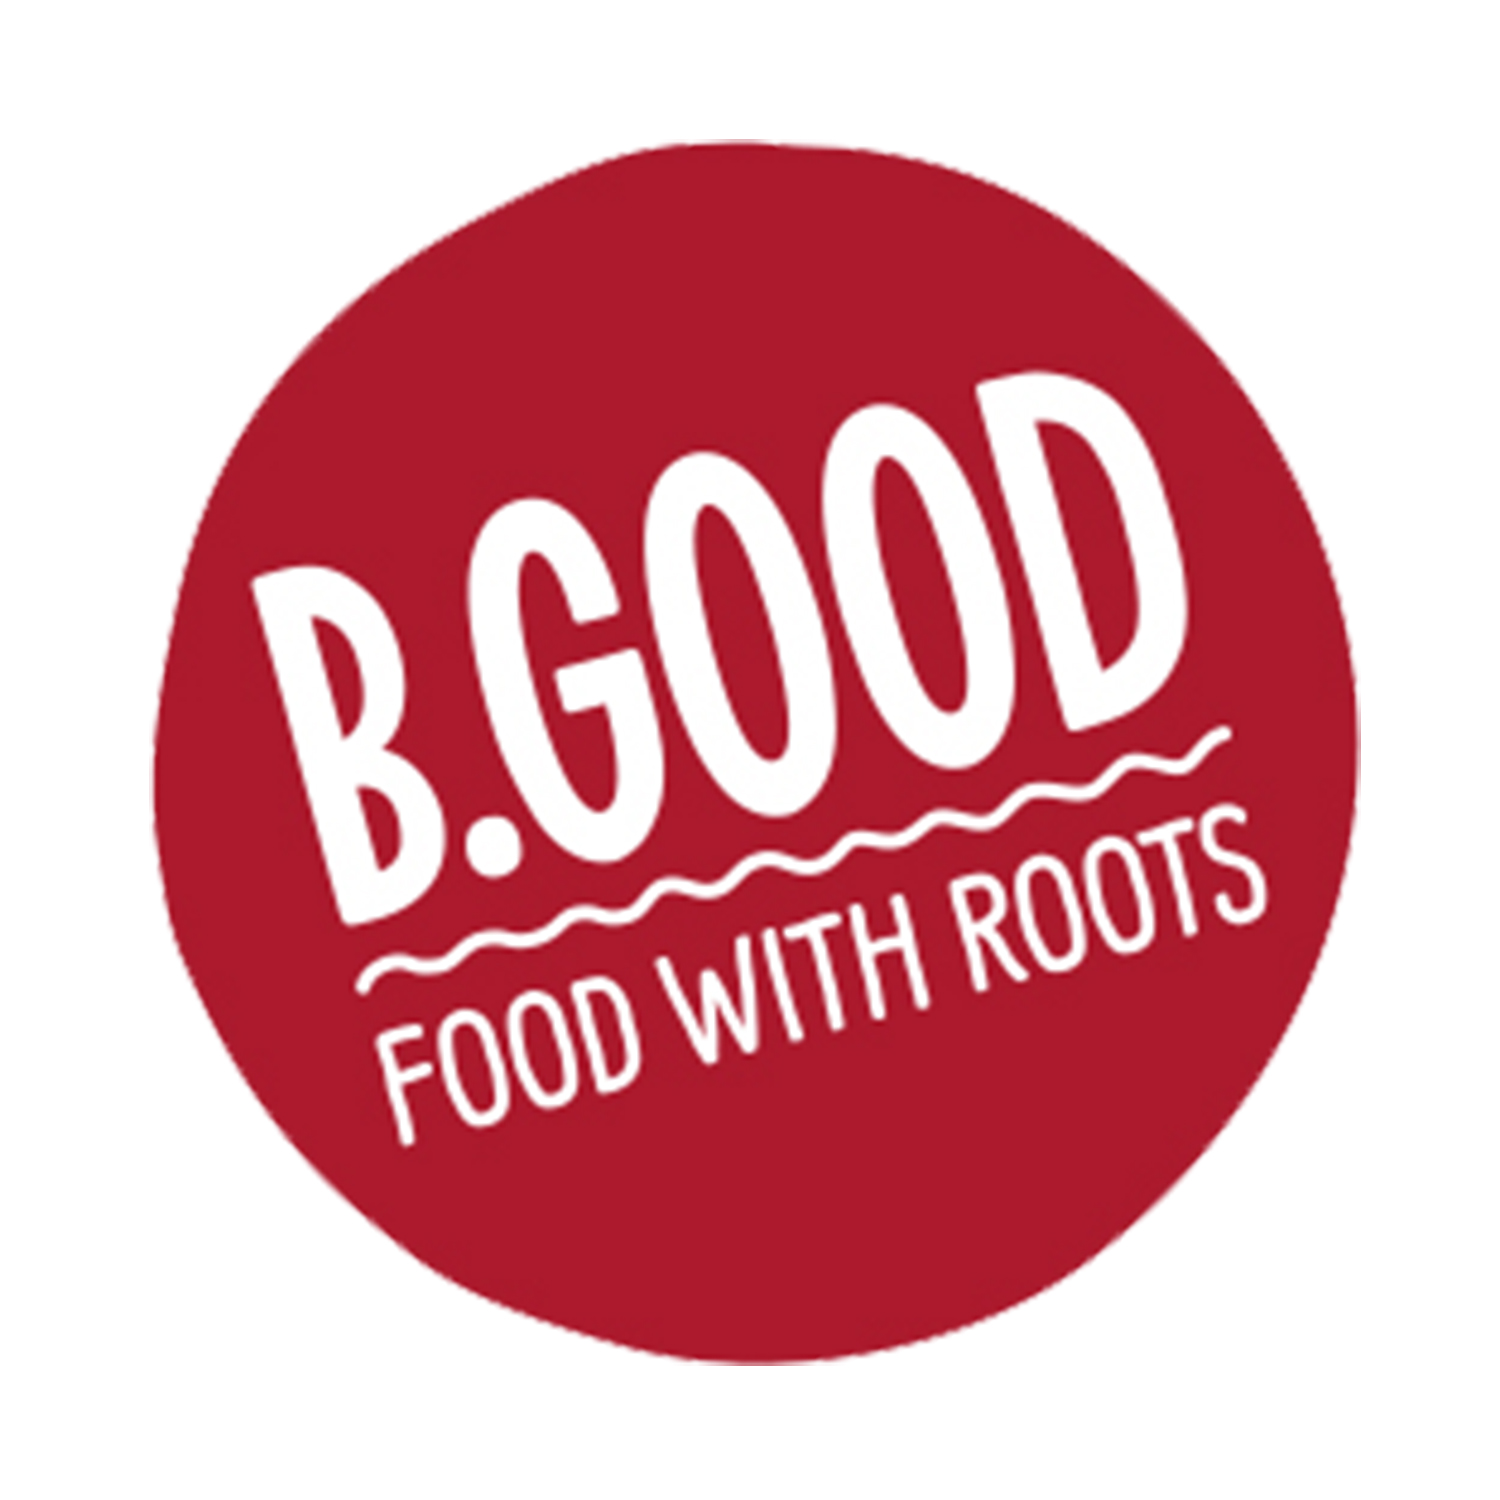 B. GOOD:  Burgers, salads and bowls inspired by the seasons and ingredients rotated with the local harvests.